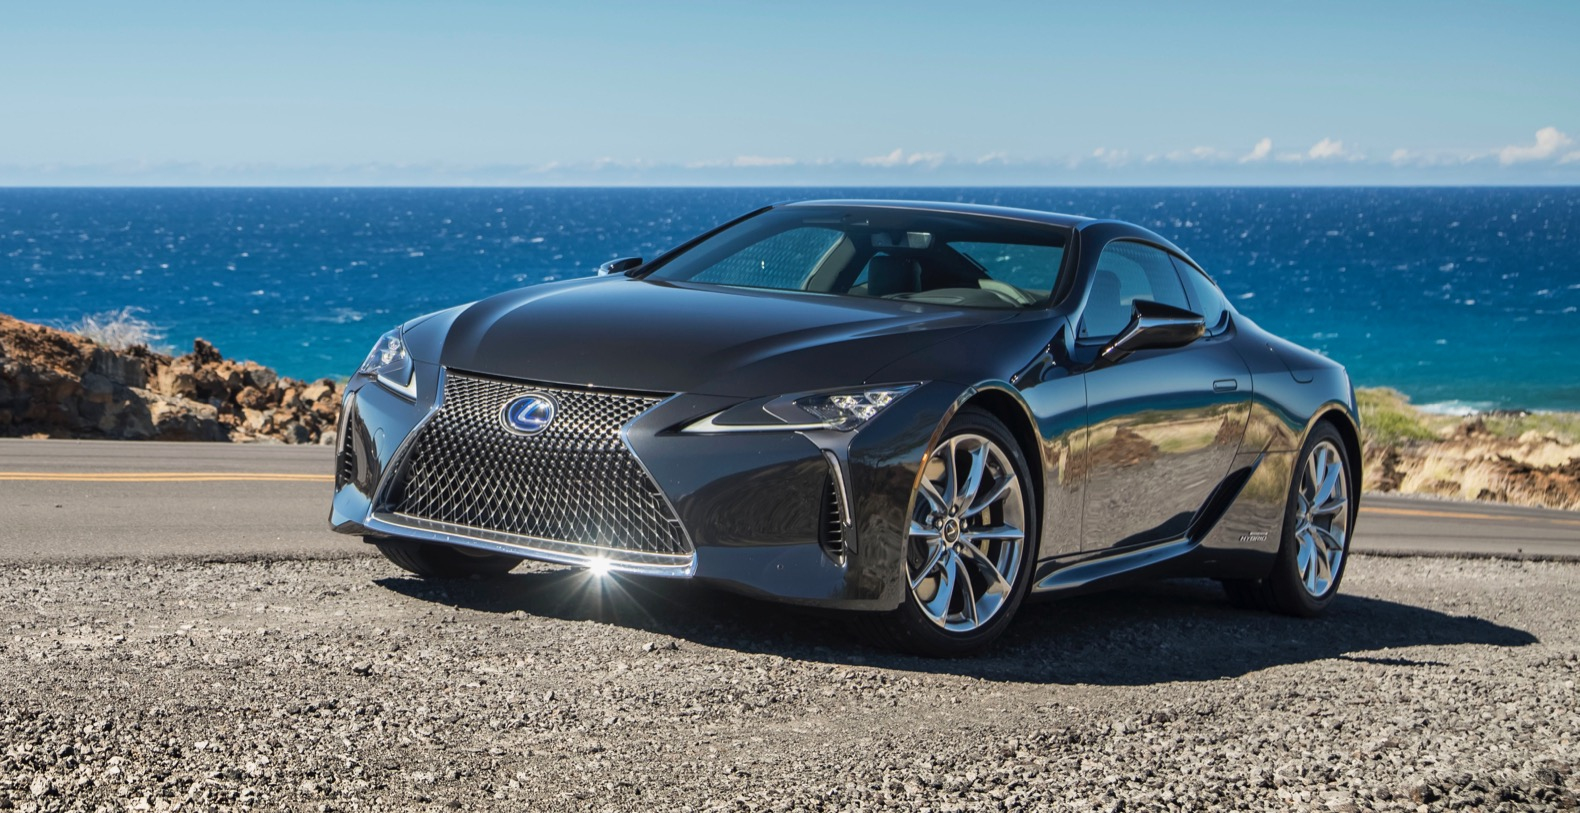 2020 Lexus LC 500h Review A Sporty And Sexy Hybrid The